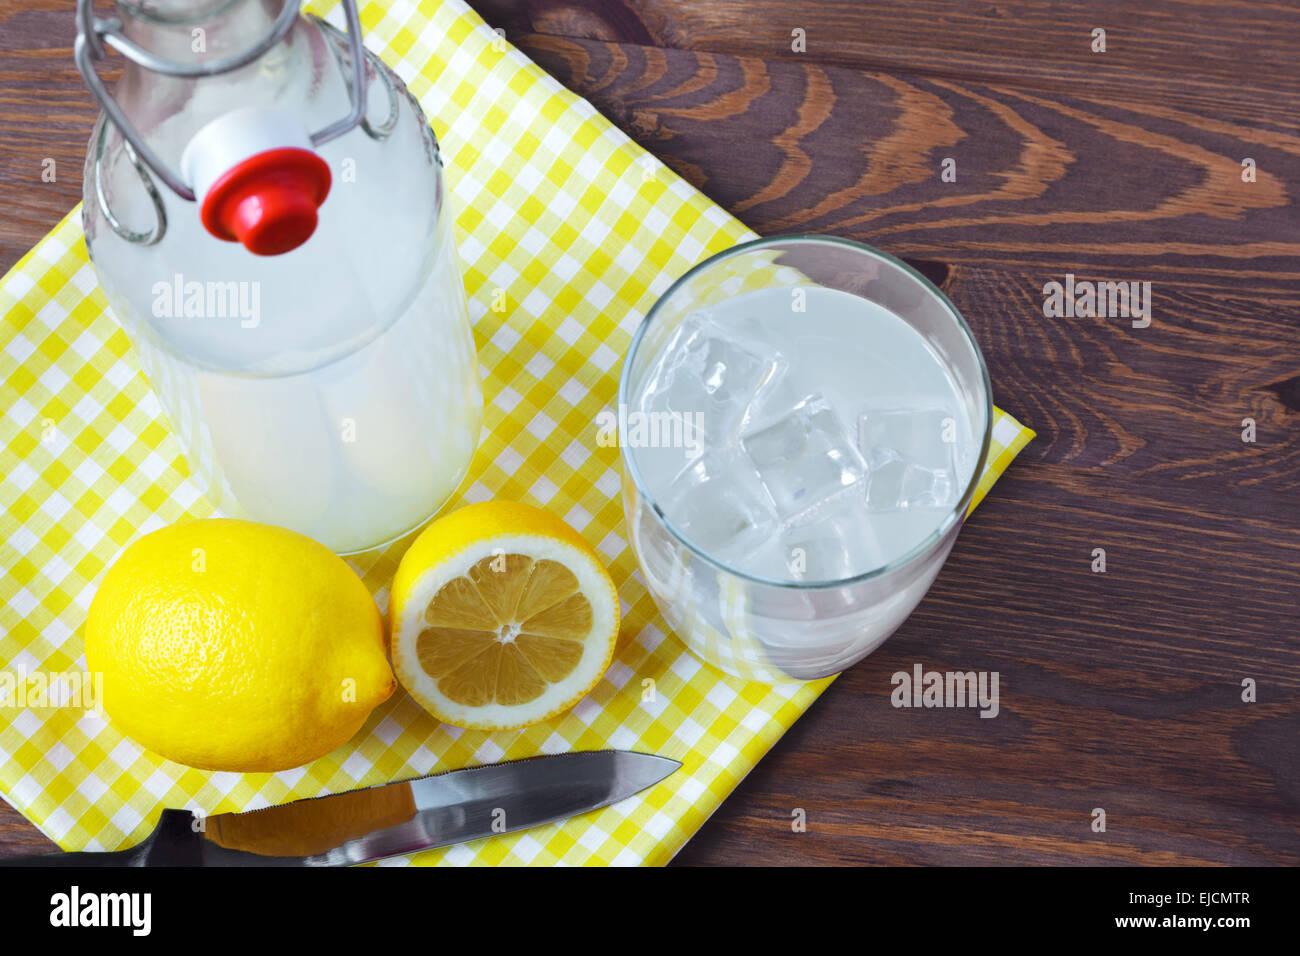 Still life photo of old fashioned or traditional homemade sour lemonade from an old style glass bottle. - Stock Image